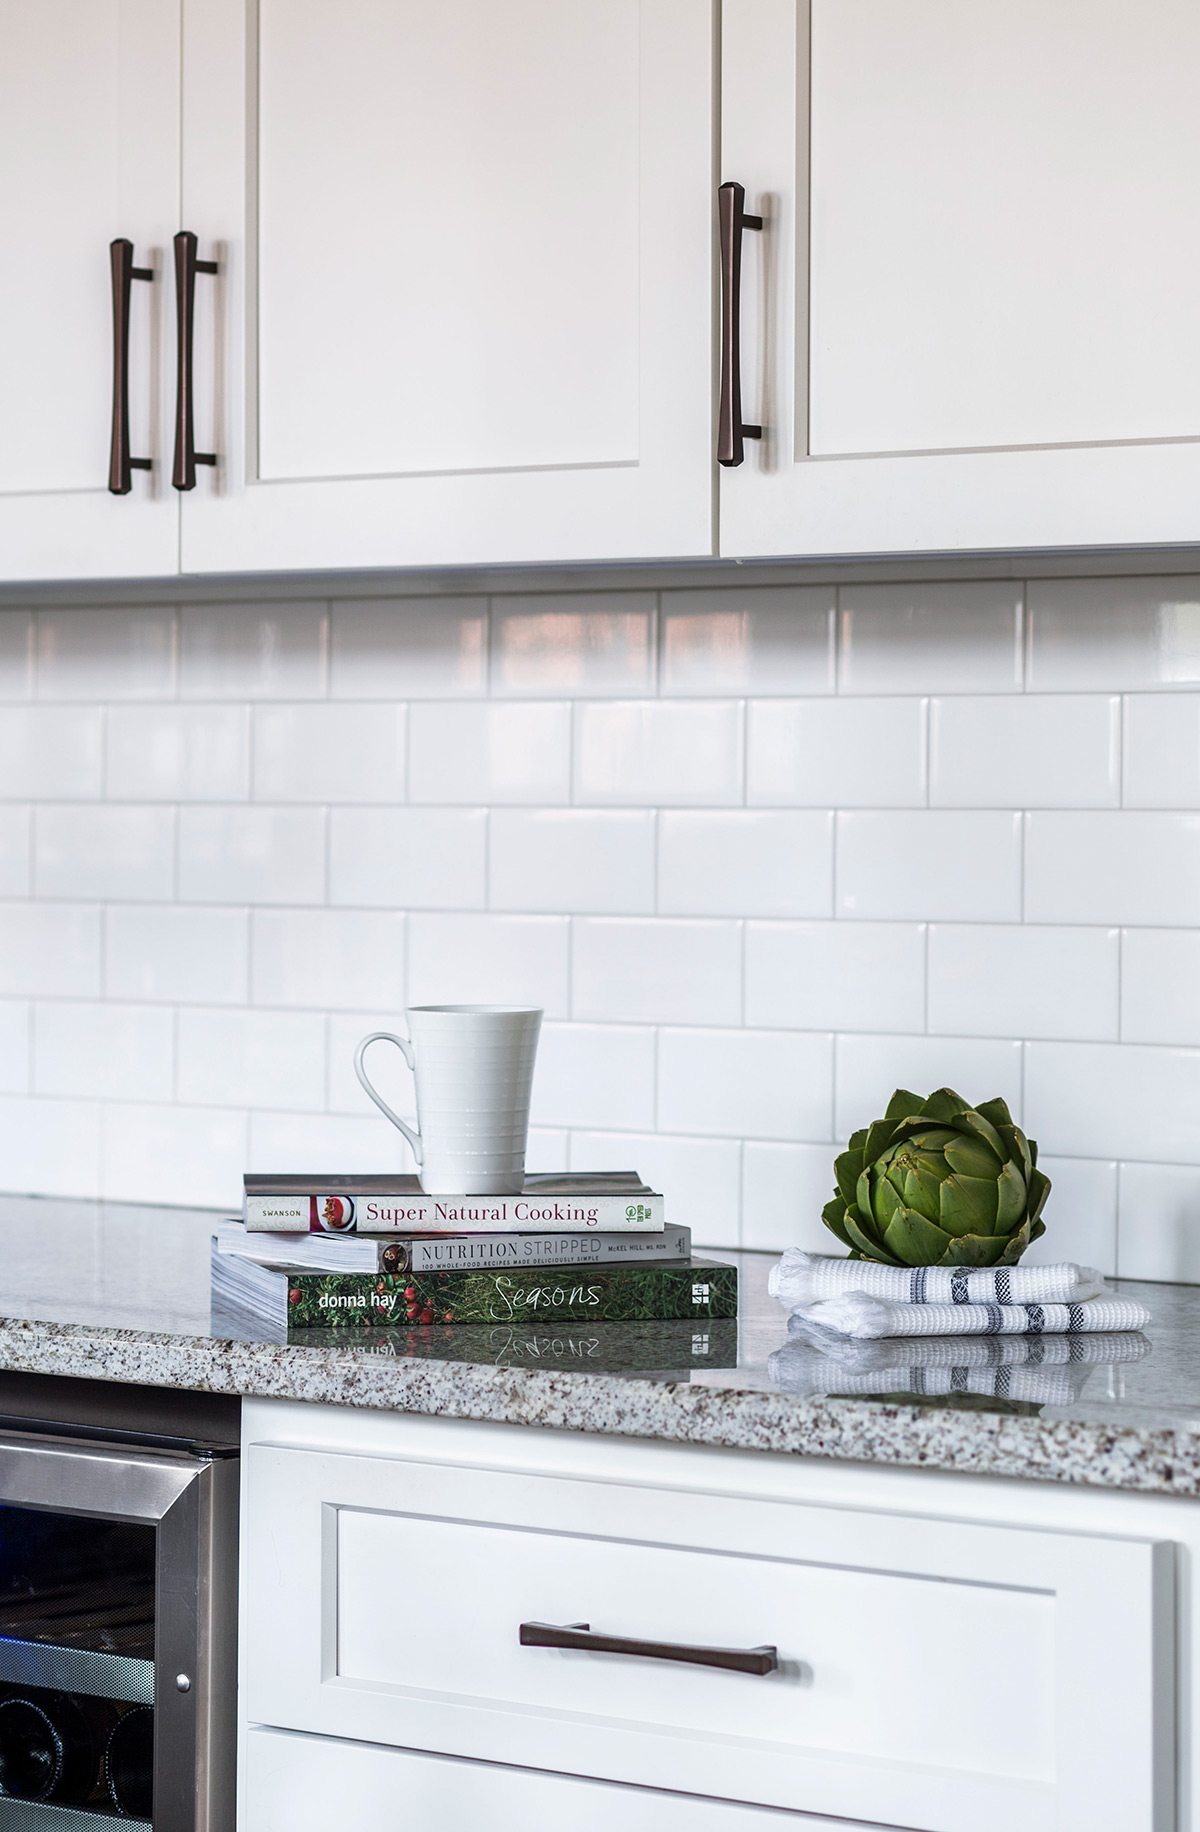 Cookbooks sit on grey granite countertops in kitchen